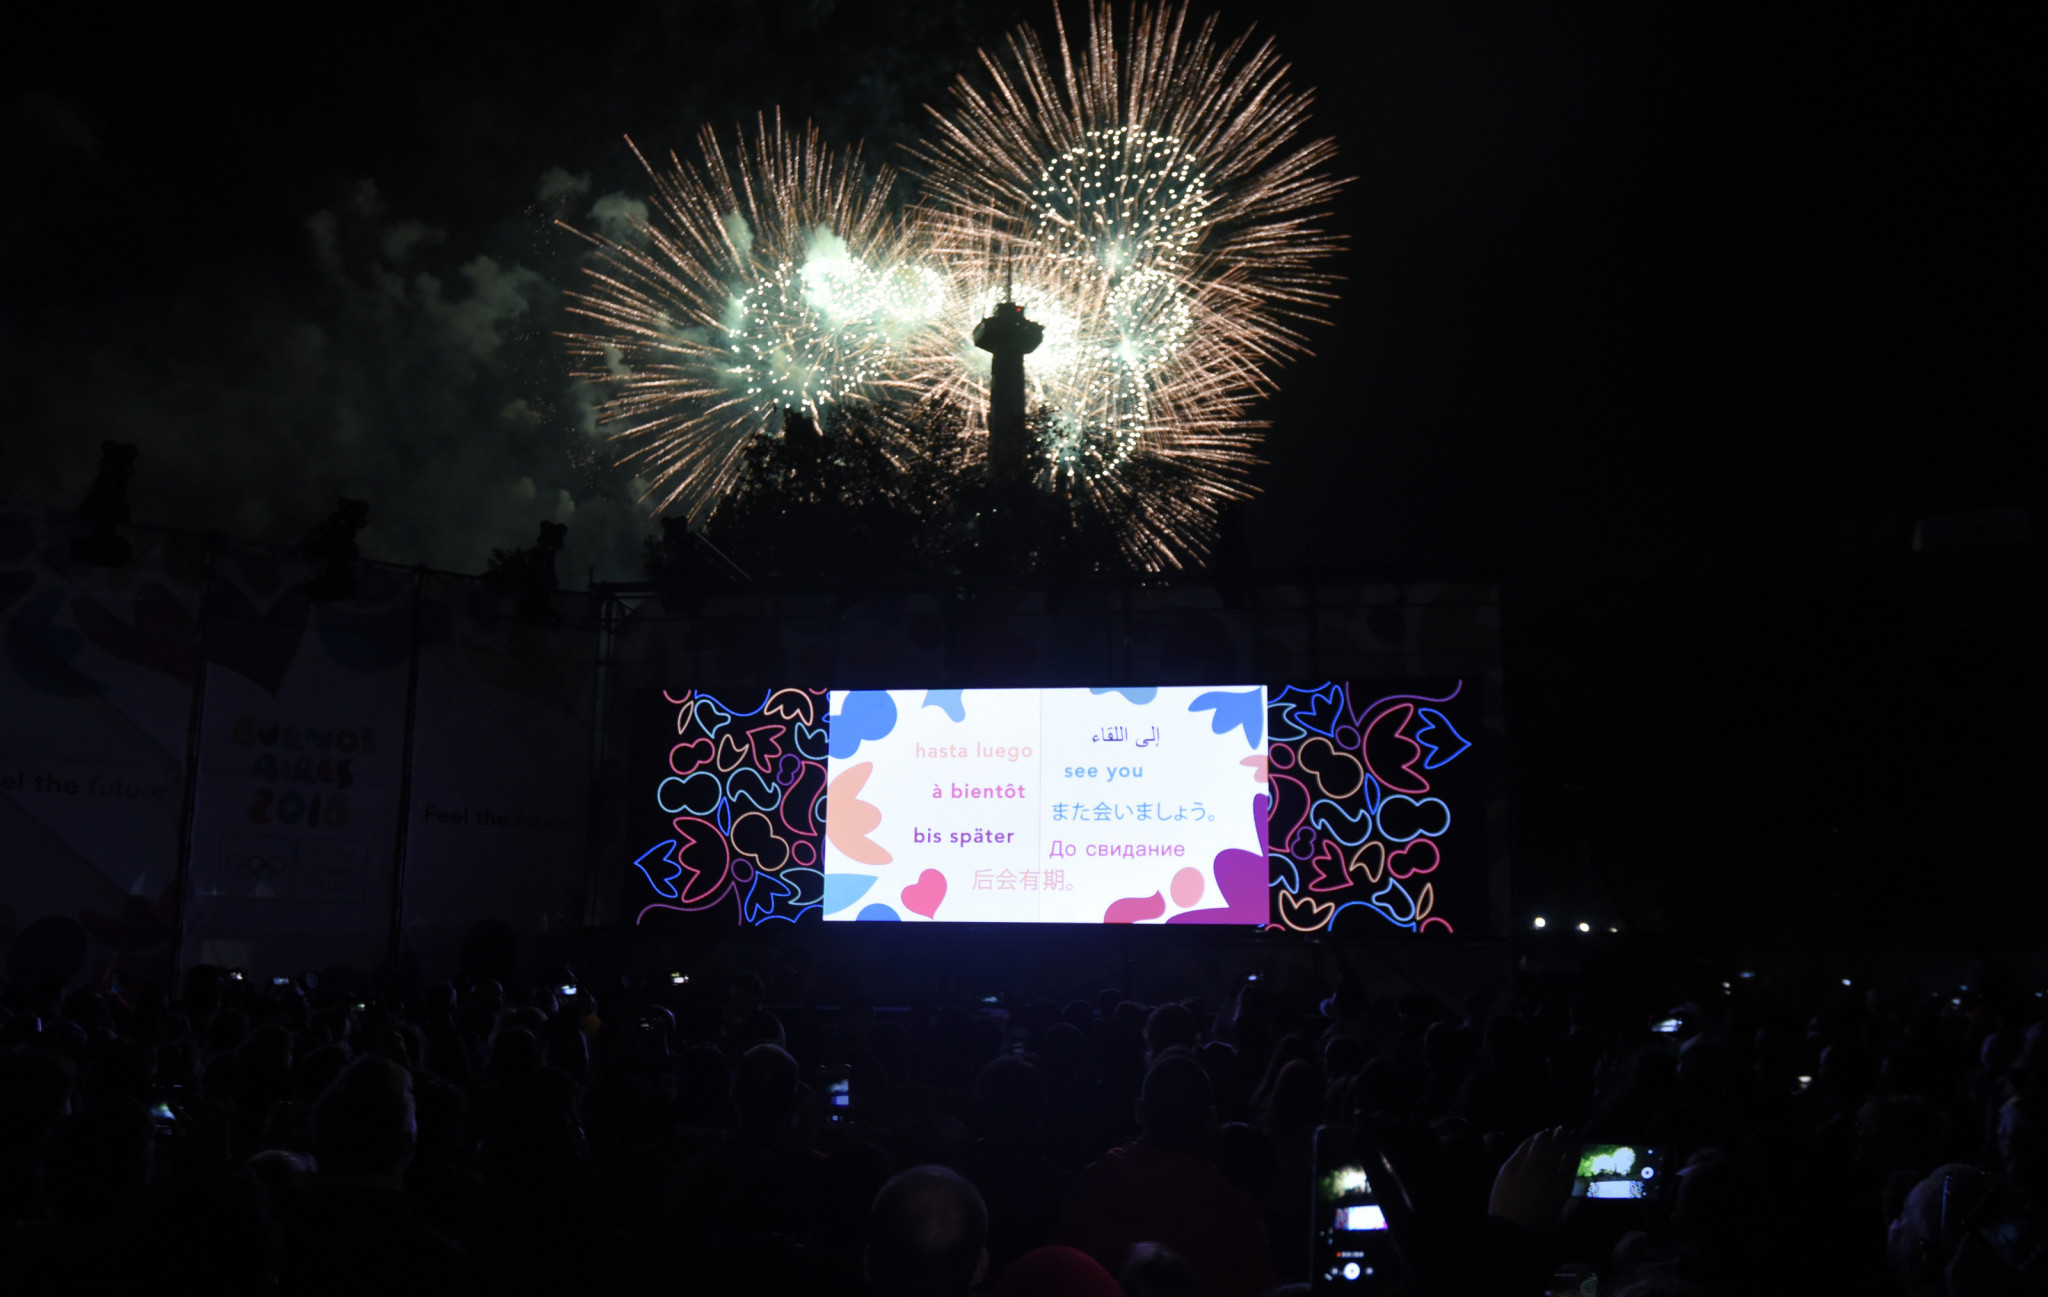 Final medals earned and shortened Closing Ceremony as Buenos Aires 2018 concludes